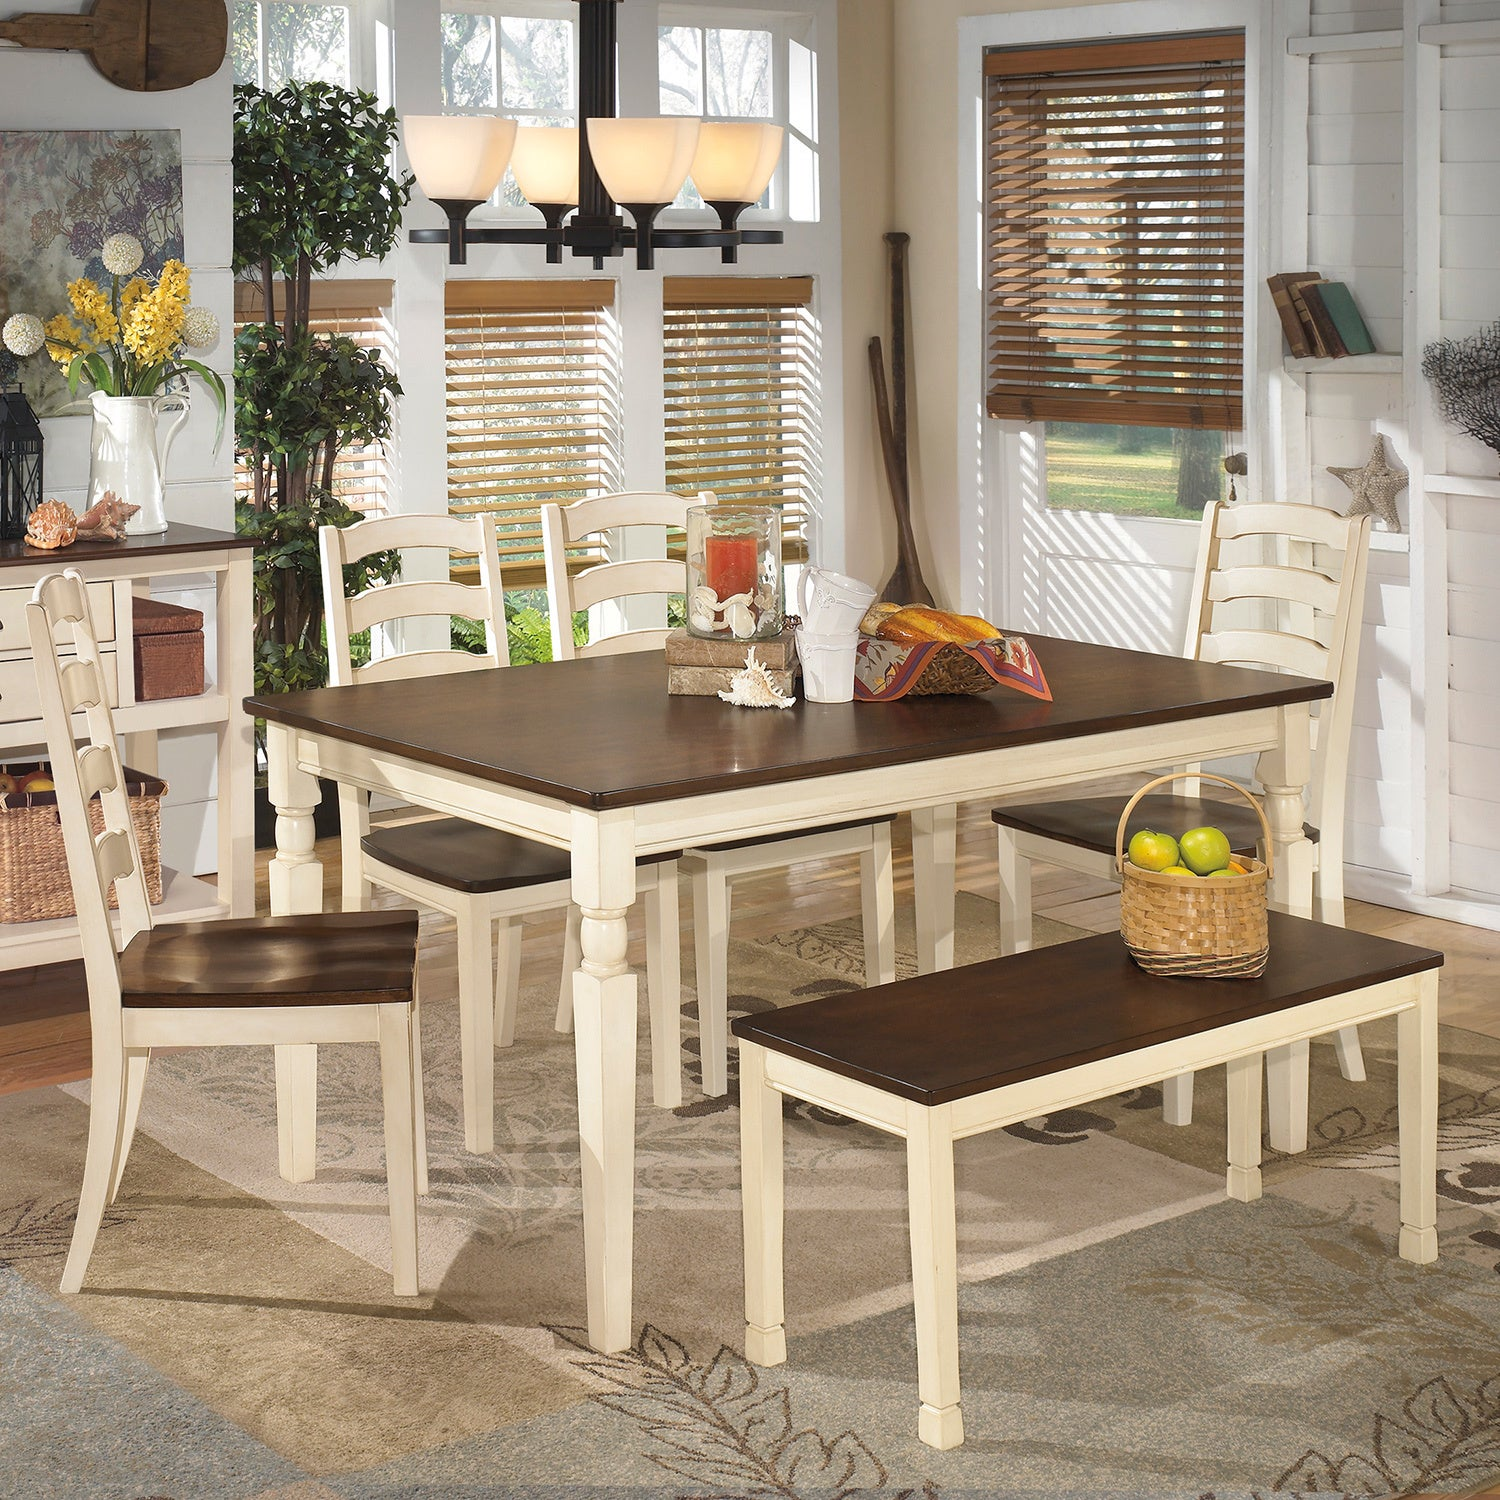 Signature Design by Ashley Whitesburg 1 Brown//Off-White Dining Room Bench -#